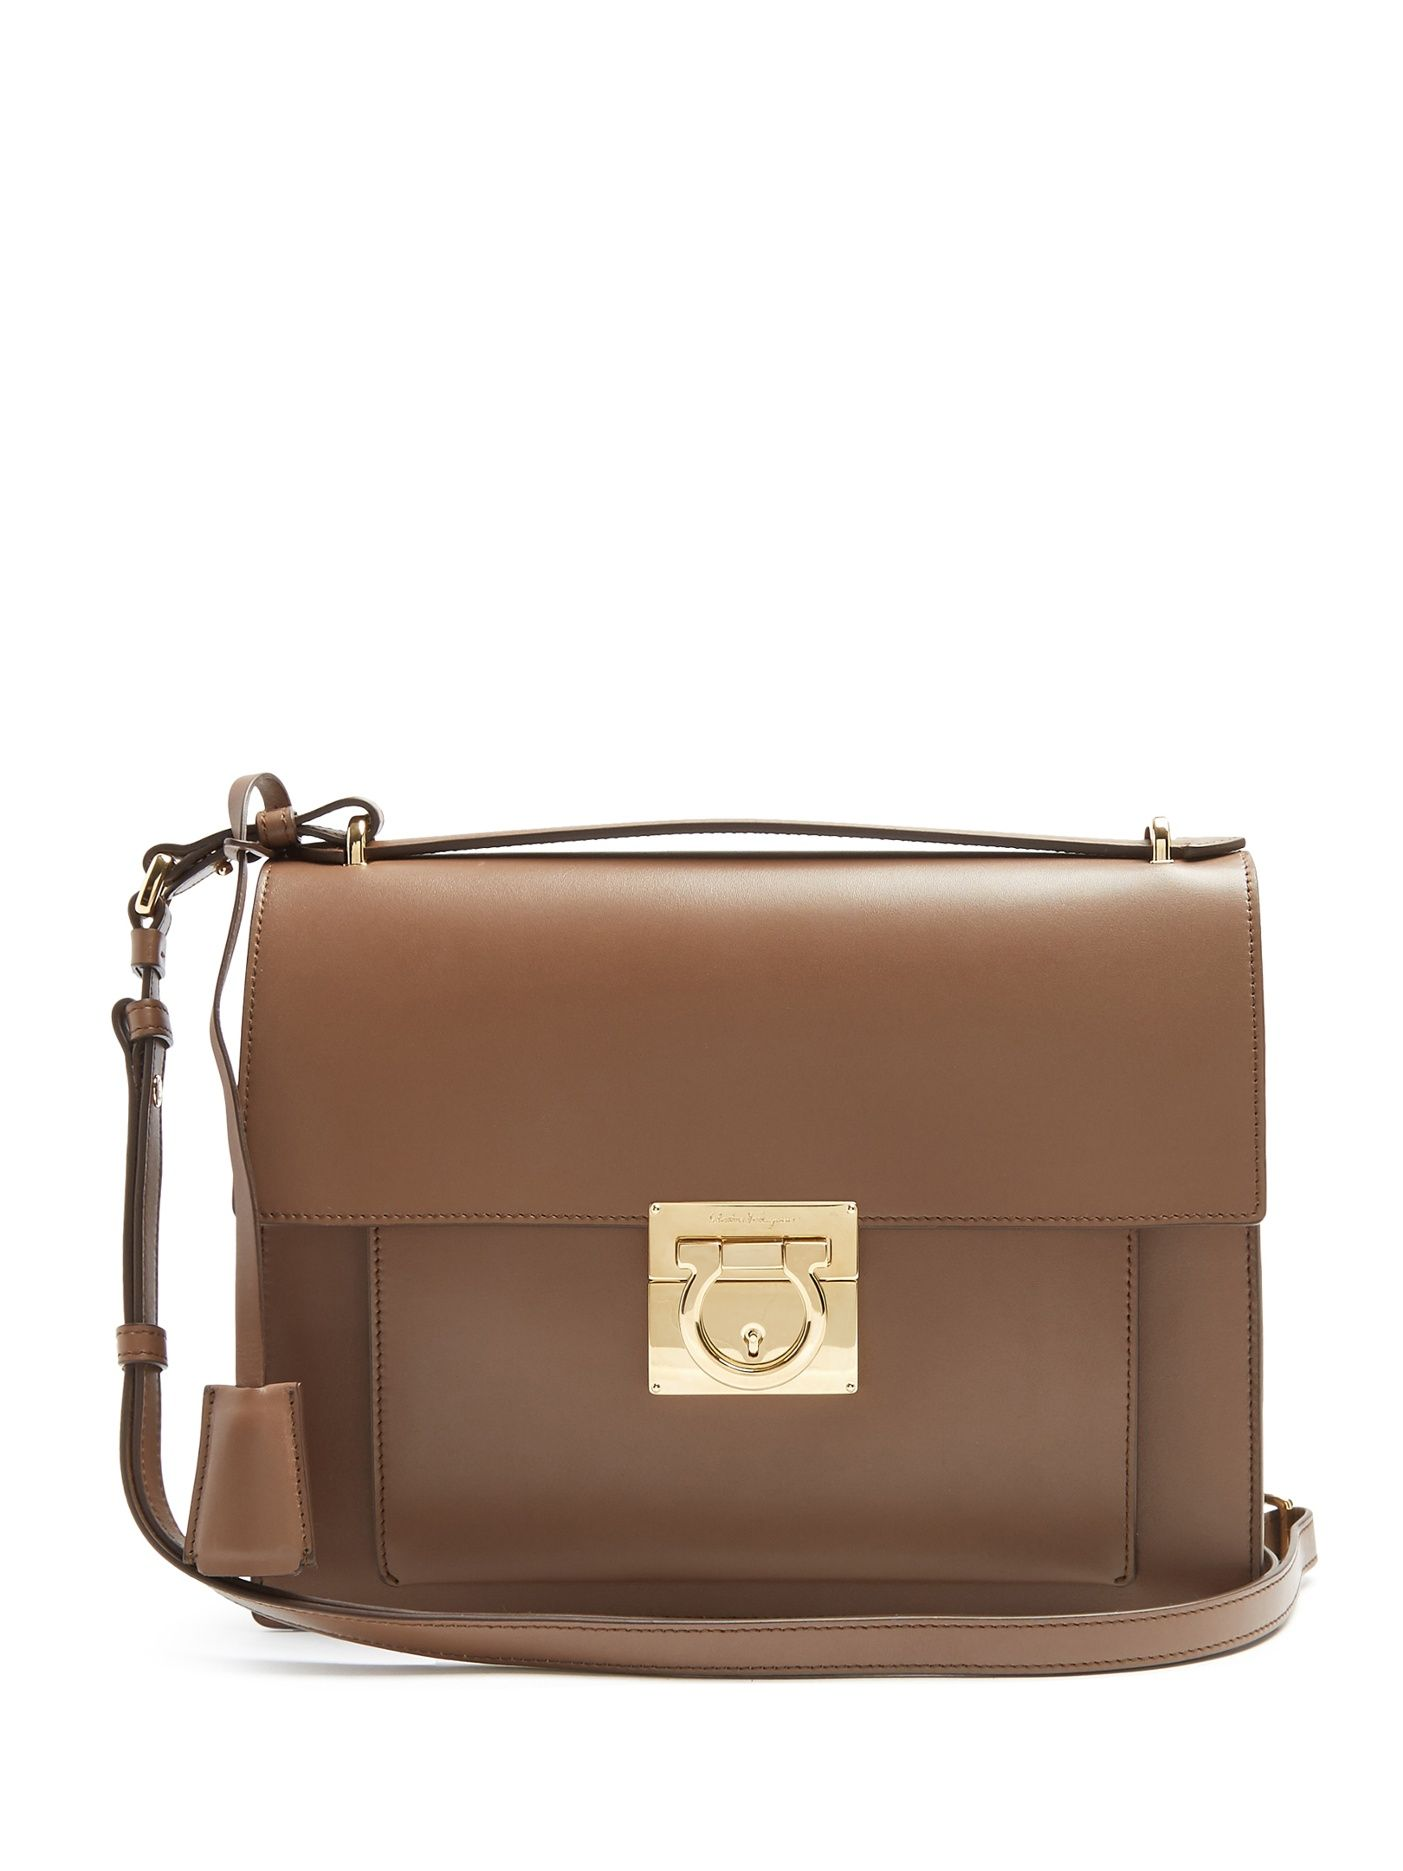 945561b830 Marisol leather shoulder bag